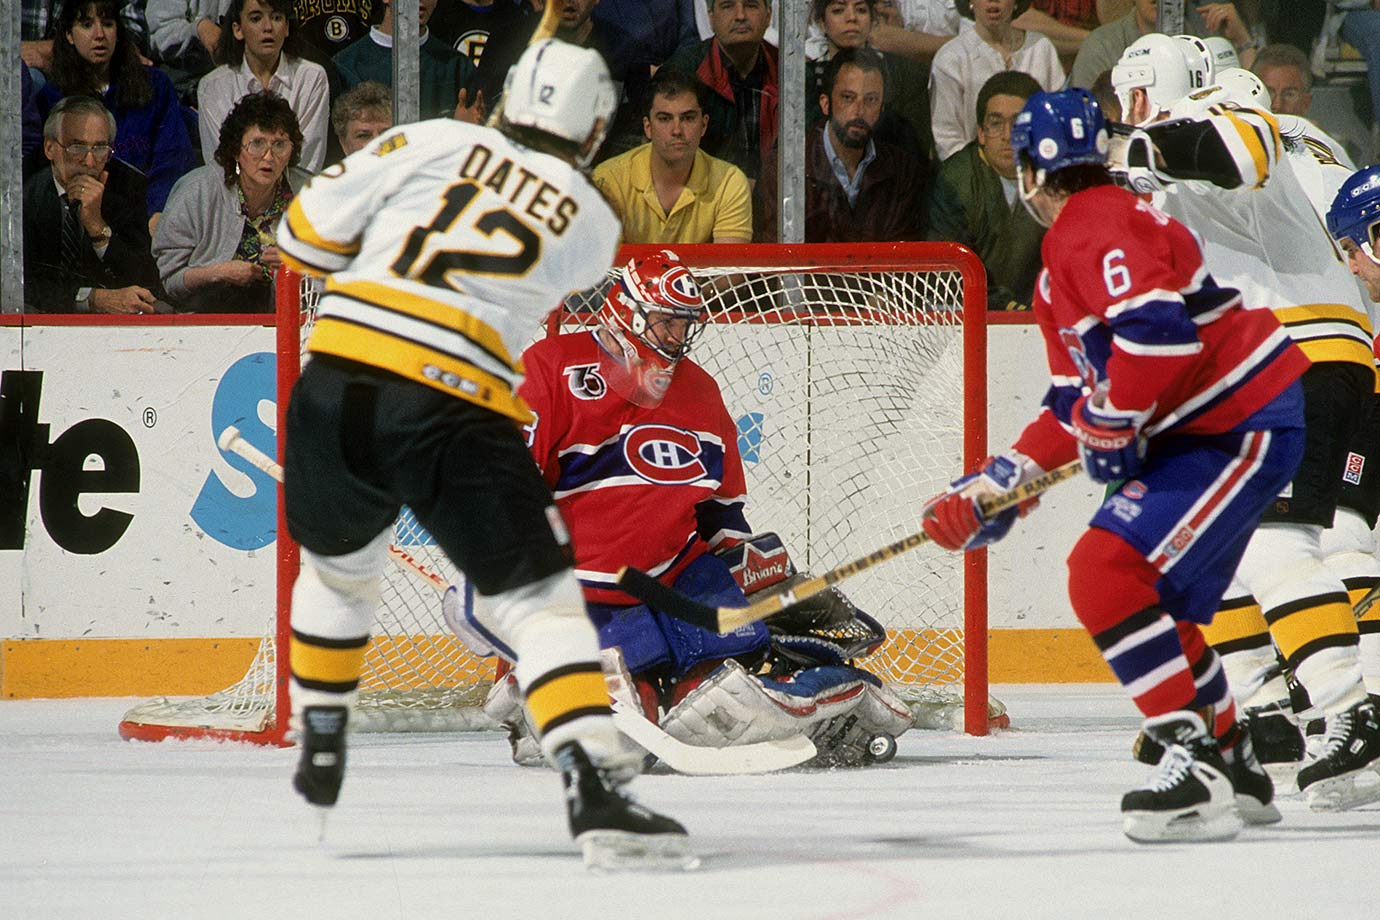 May 9, 1992 — Adams Division Final, Game 4 (Canadiens vs. Bruins)